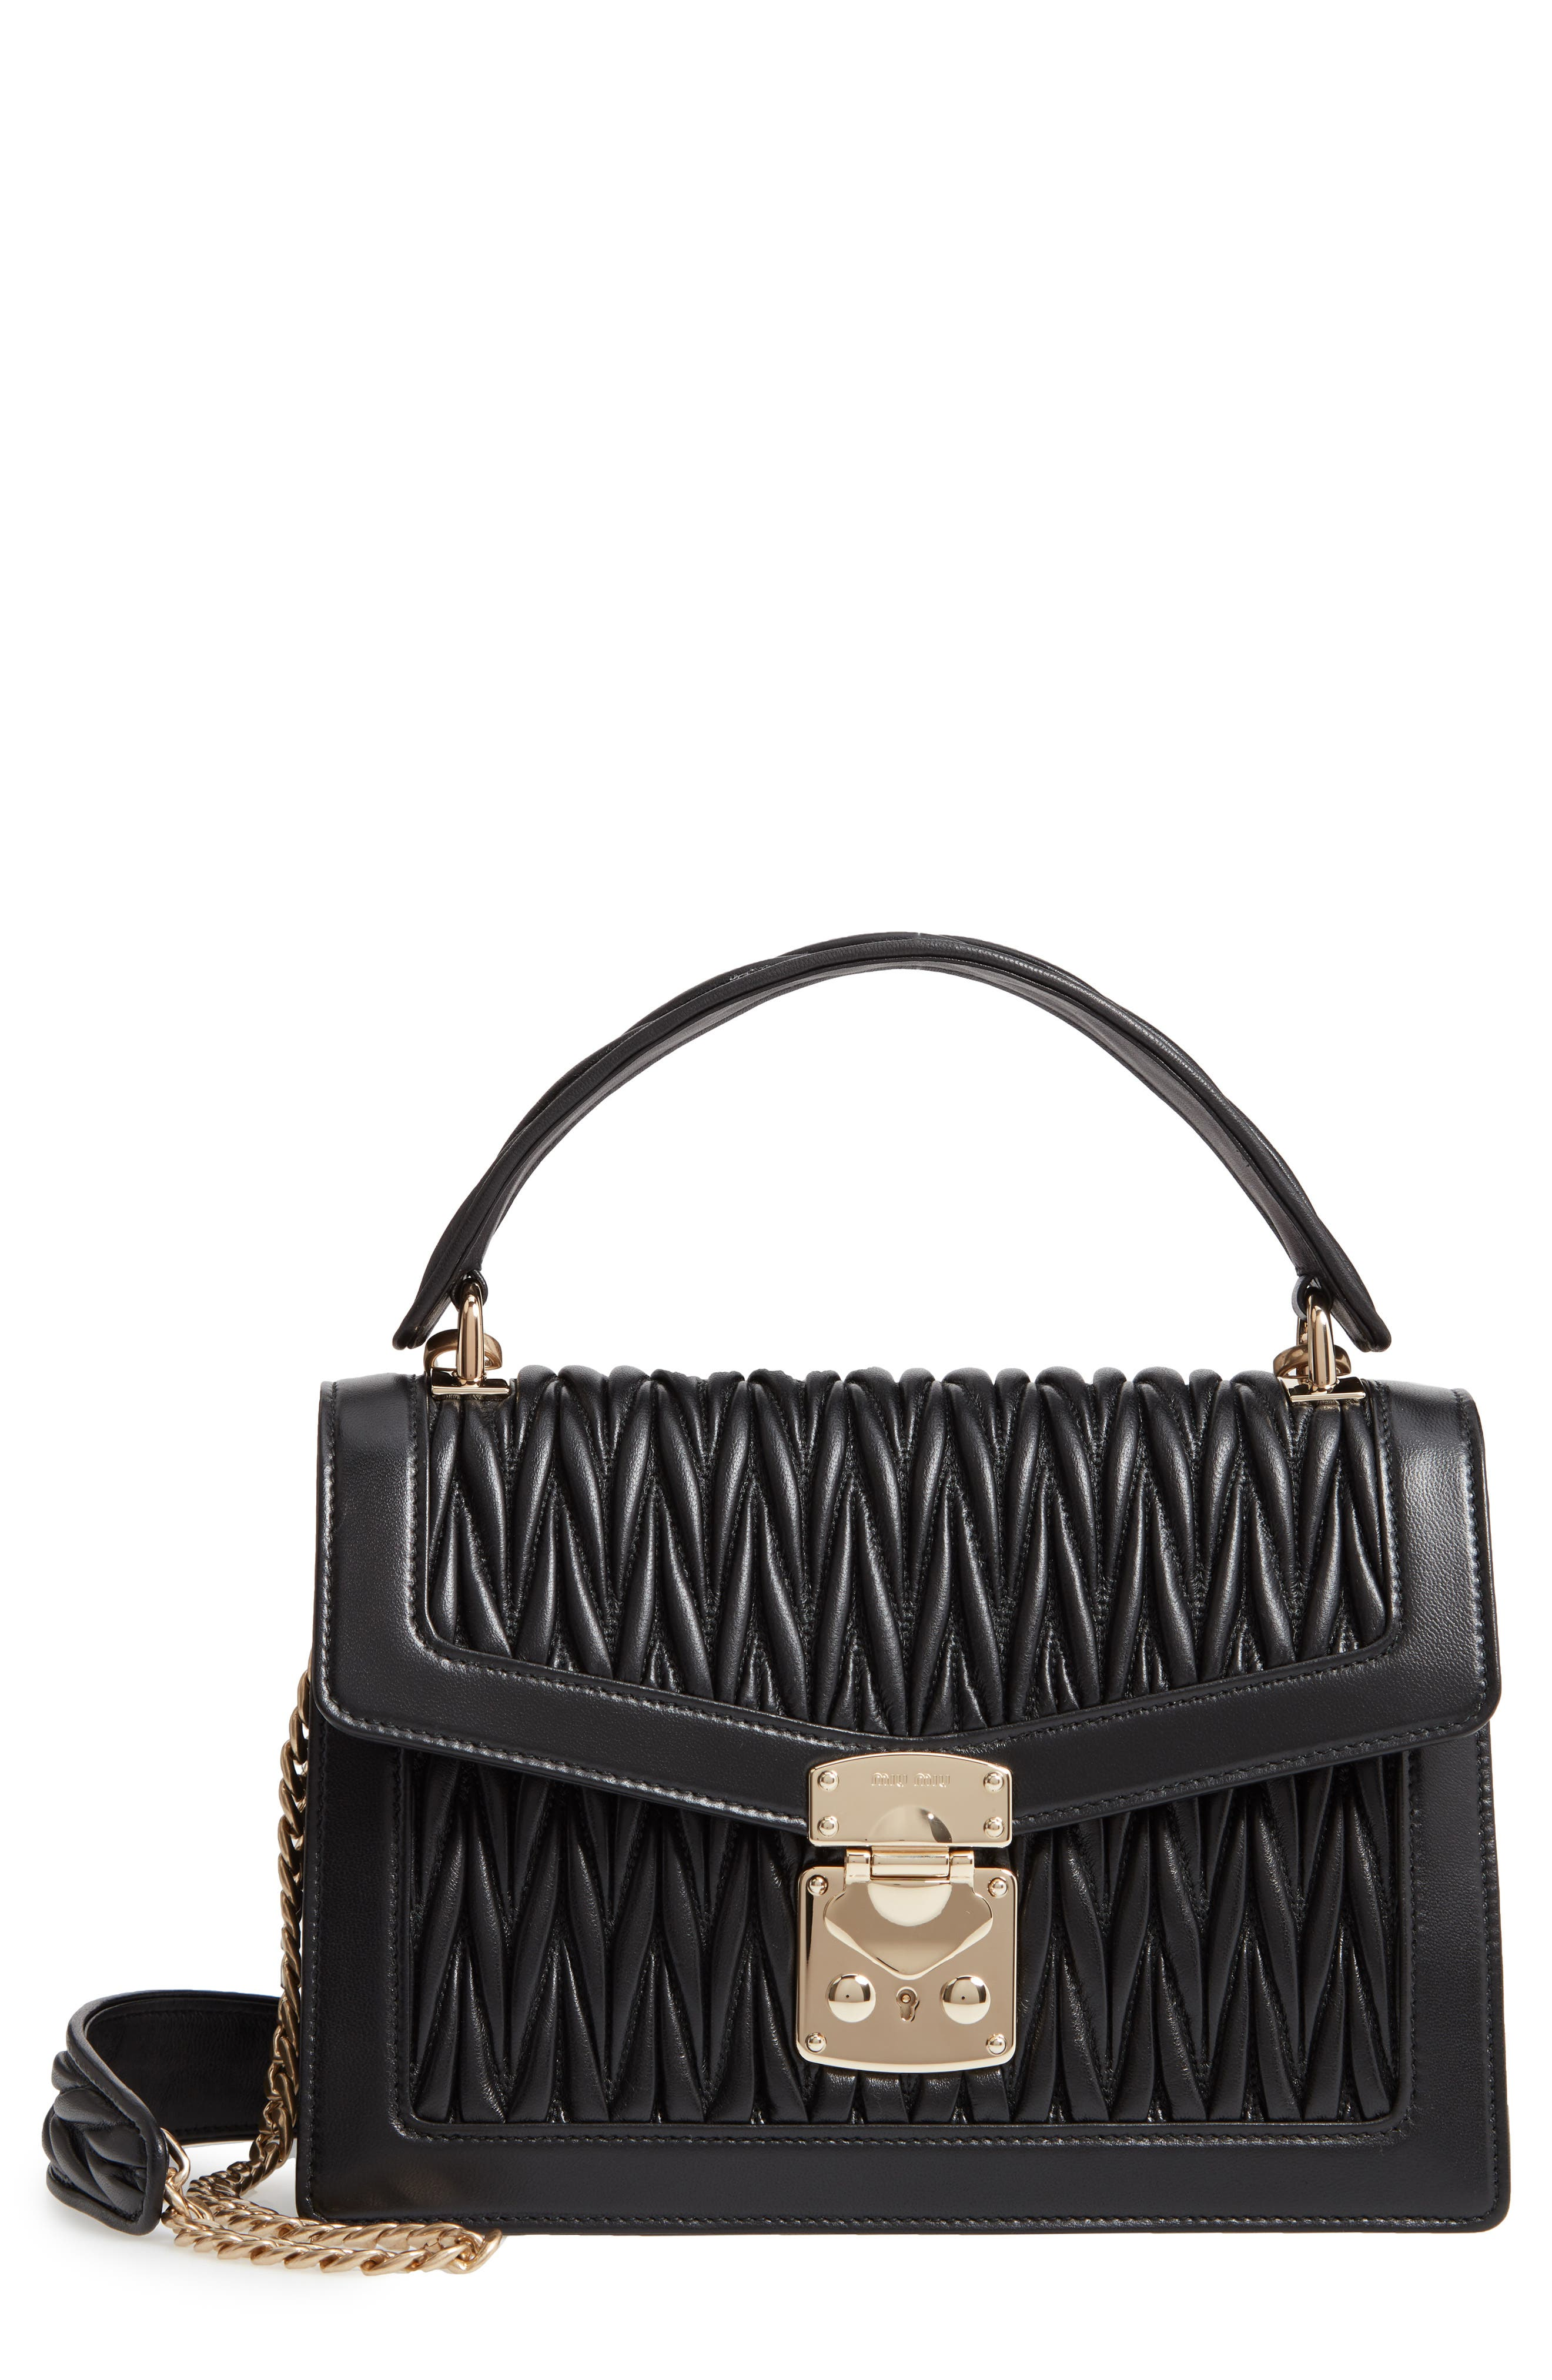 Confidential Matelassé Quilted Lambskin Leather Top Handle Bag, Main, color, NERO